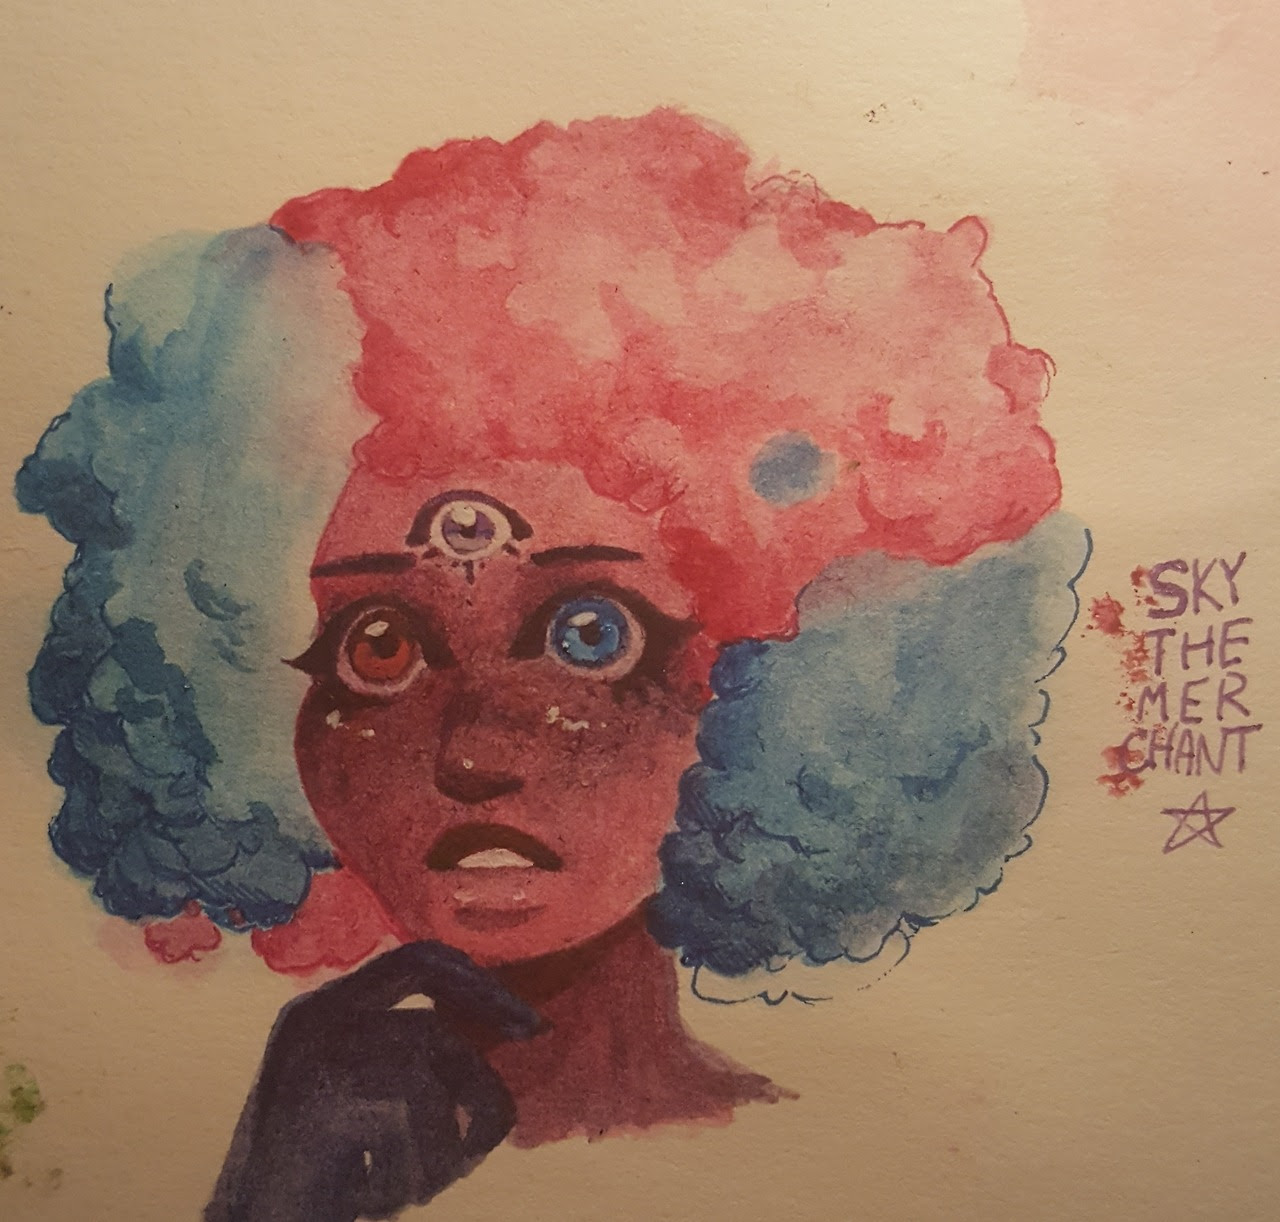 cotton candy garnet is one of my favourite things to draw. Her hair is so good.